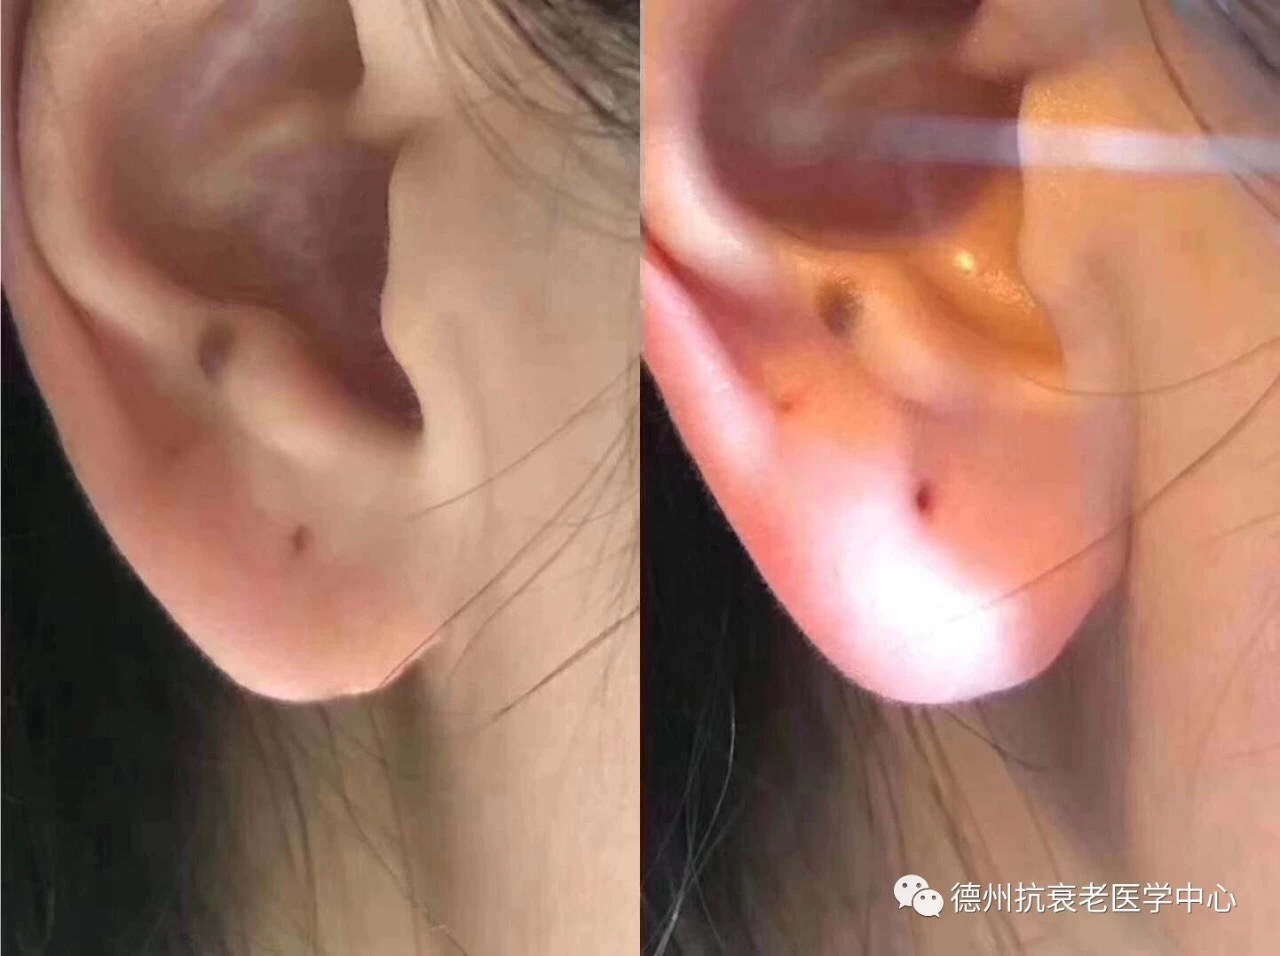 Ear Lobes Before and After